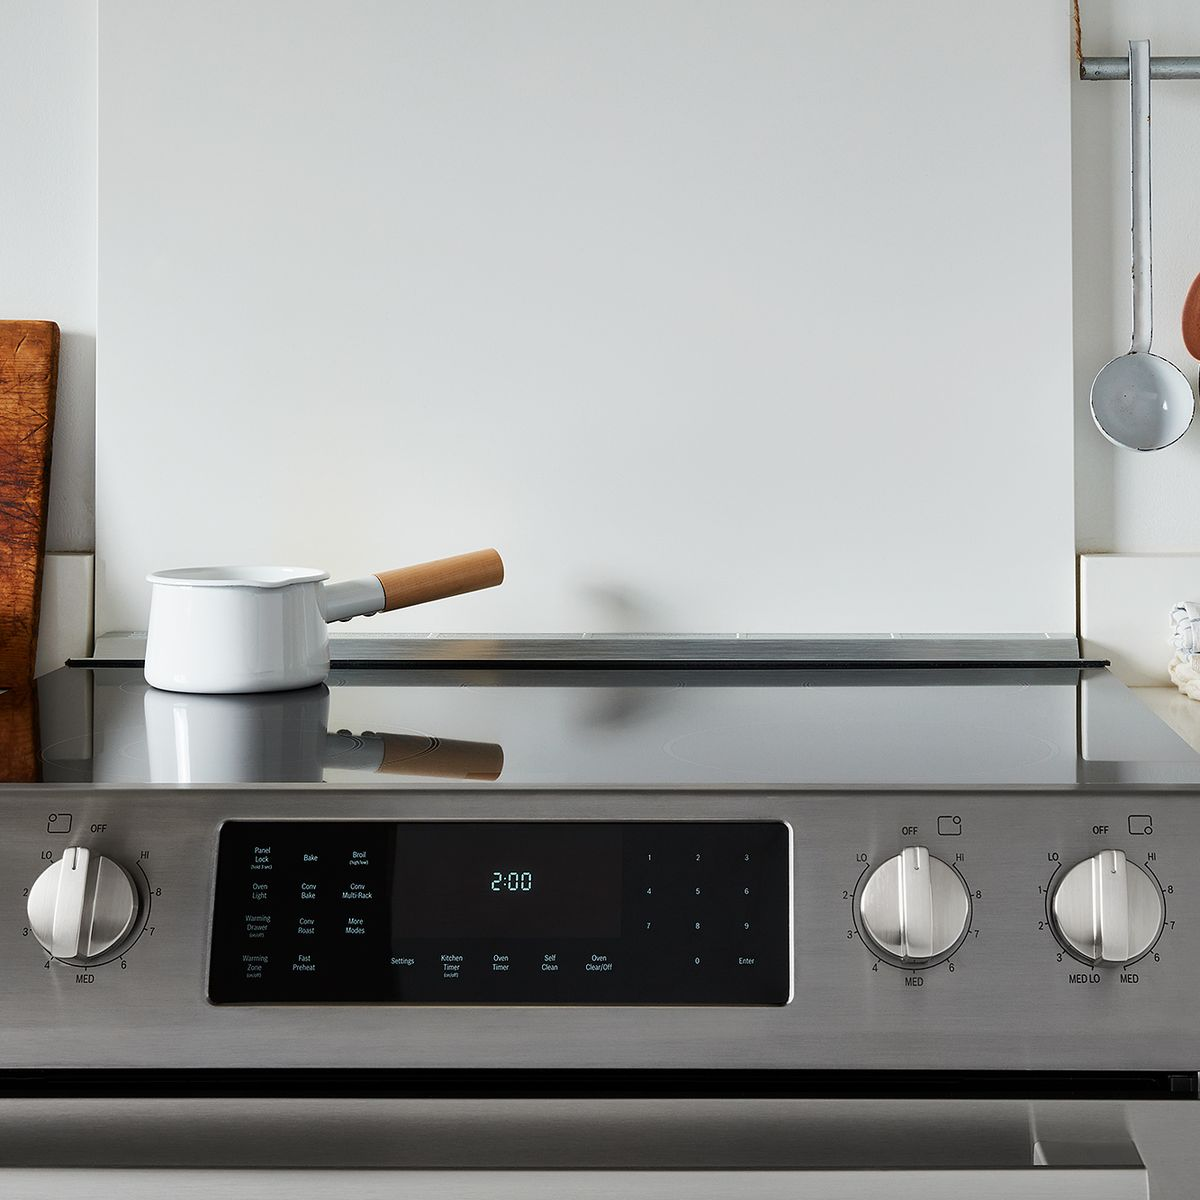 26 cooking tools even a minimalist cant live without